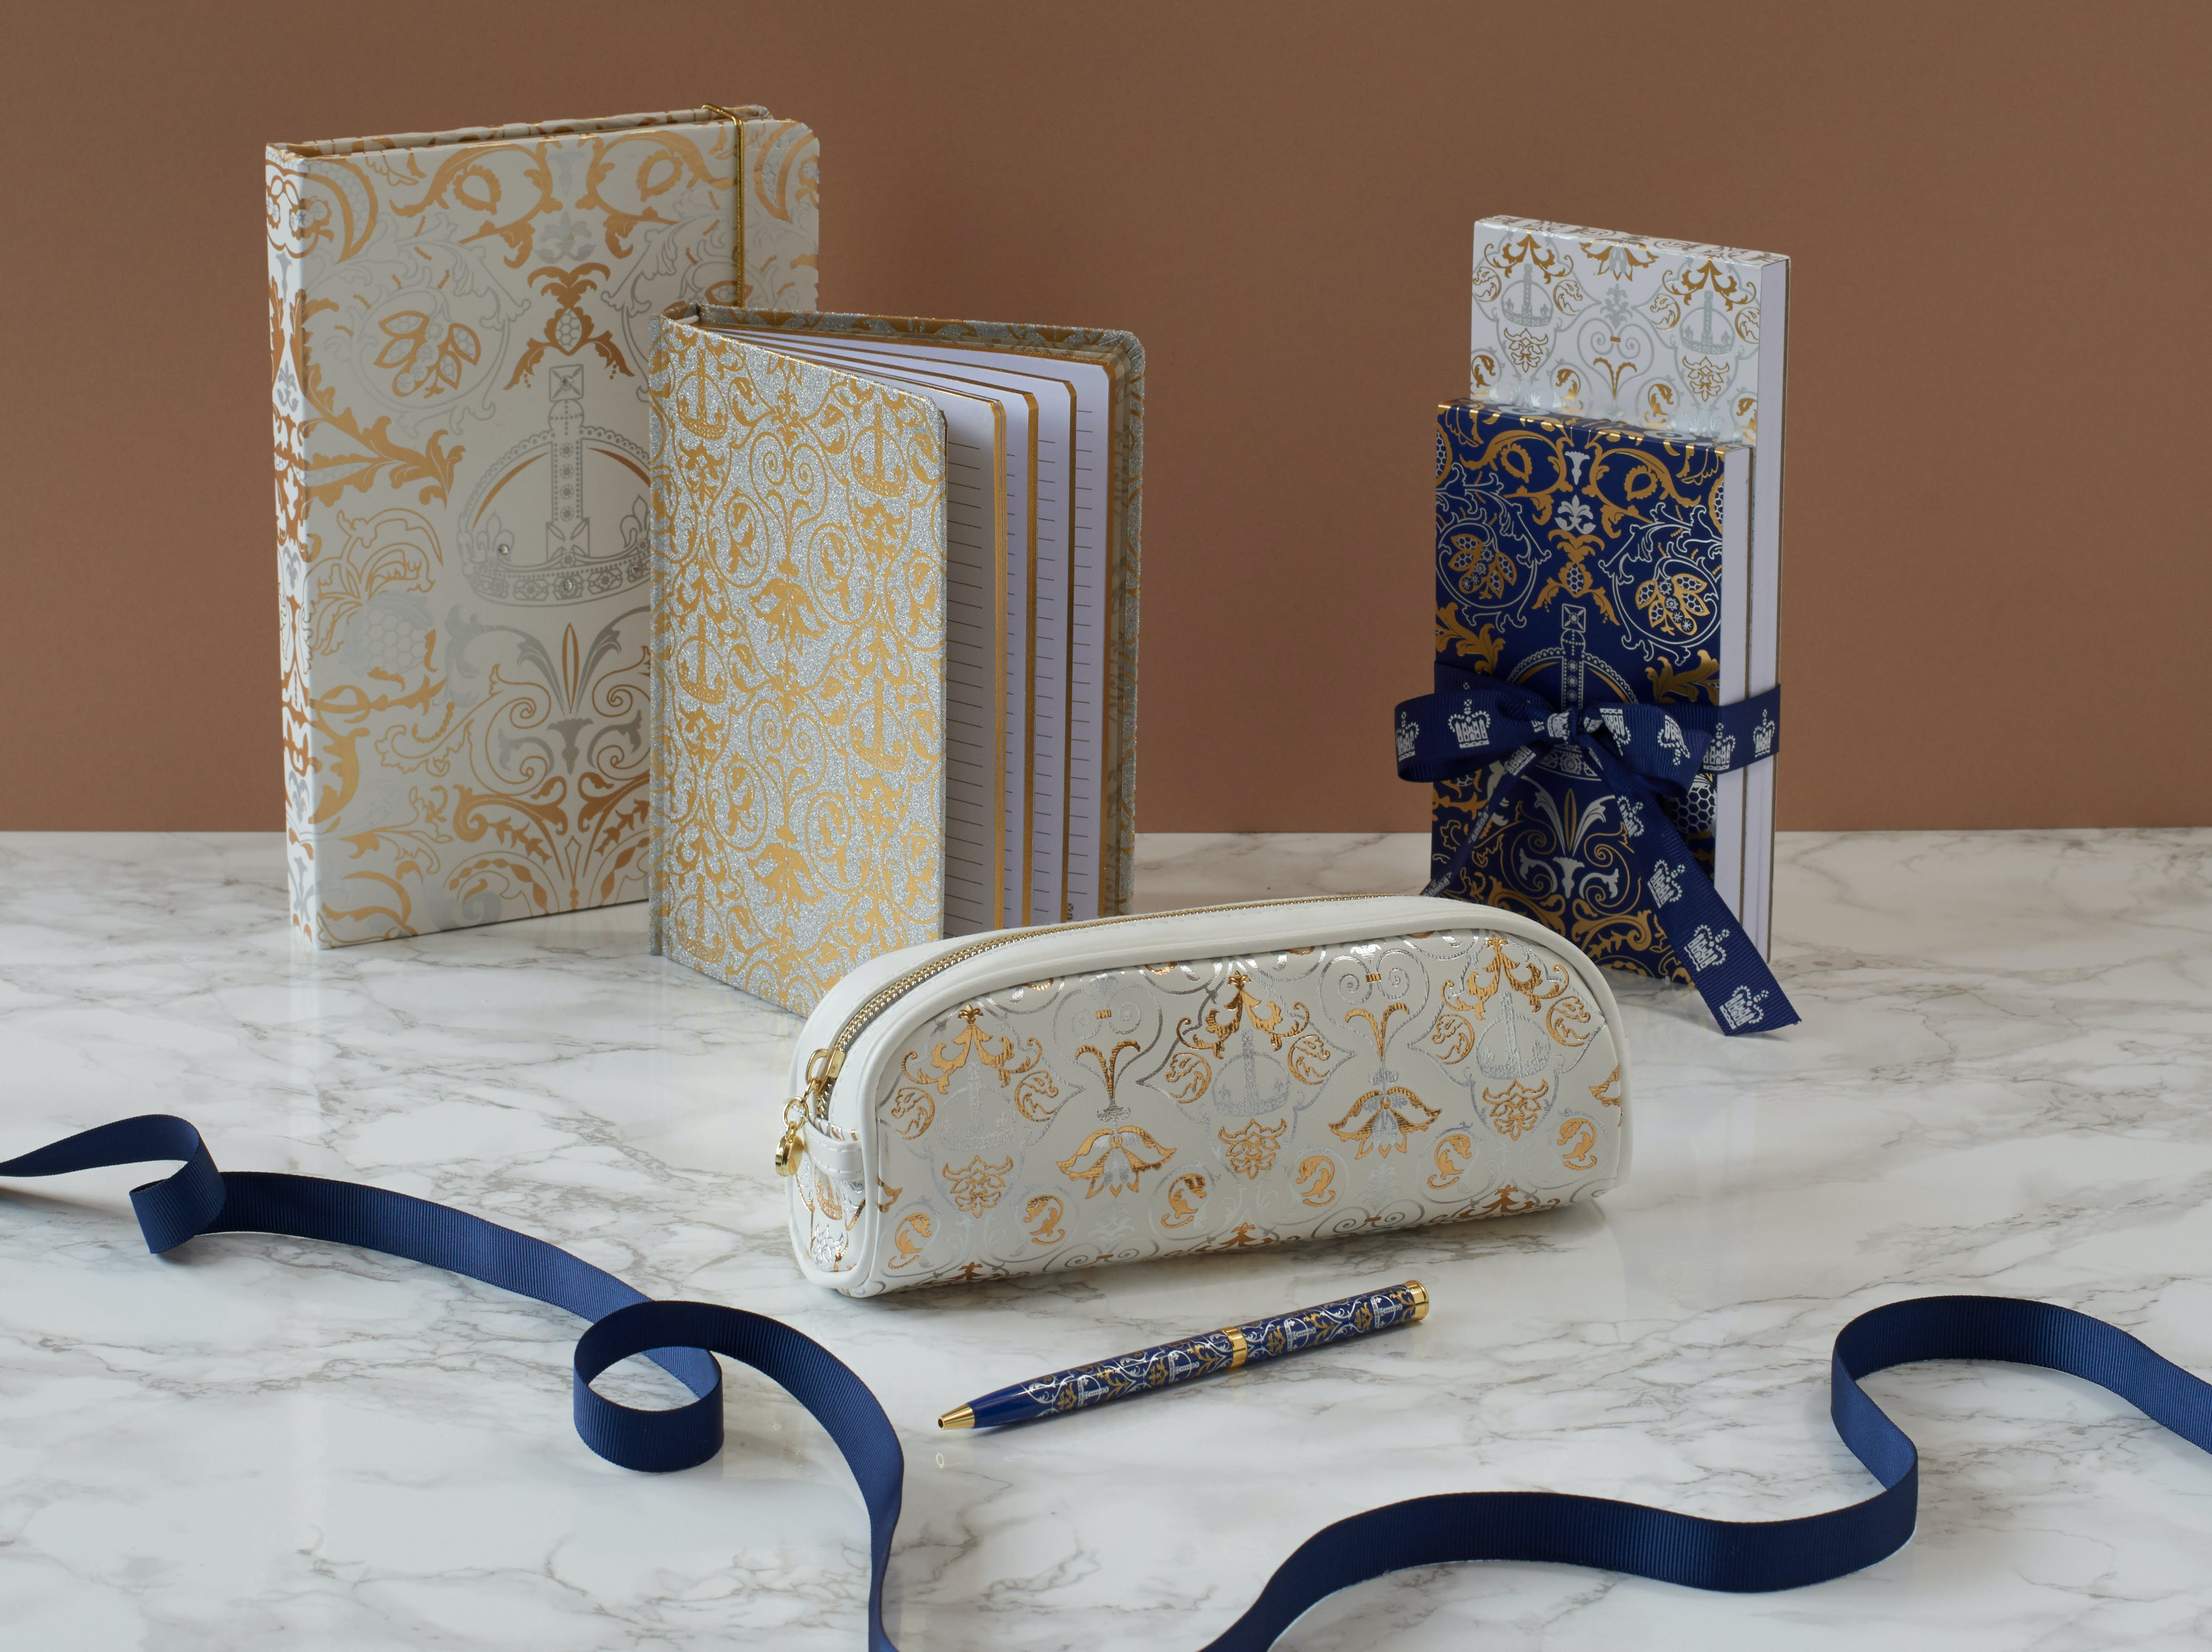 A collection of stationery items under the Royal Victoria range shown left to right: Royal Victoria white A5 luxury notebook, Royal Victoria Royal Victoria B6 glitter gold and silver notebook, Royal Victoria Luxury White Pencil Case, Royal Victoria navy gem pen, Royal Victoria list notepads set of two